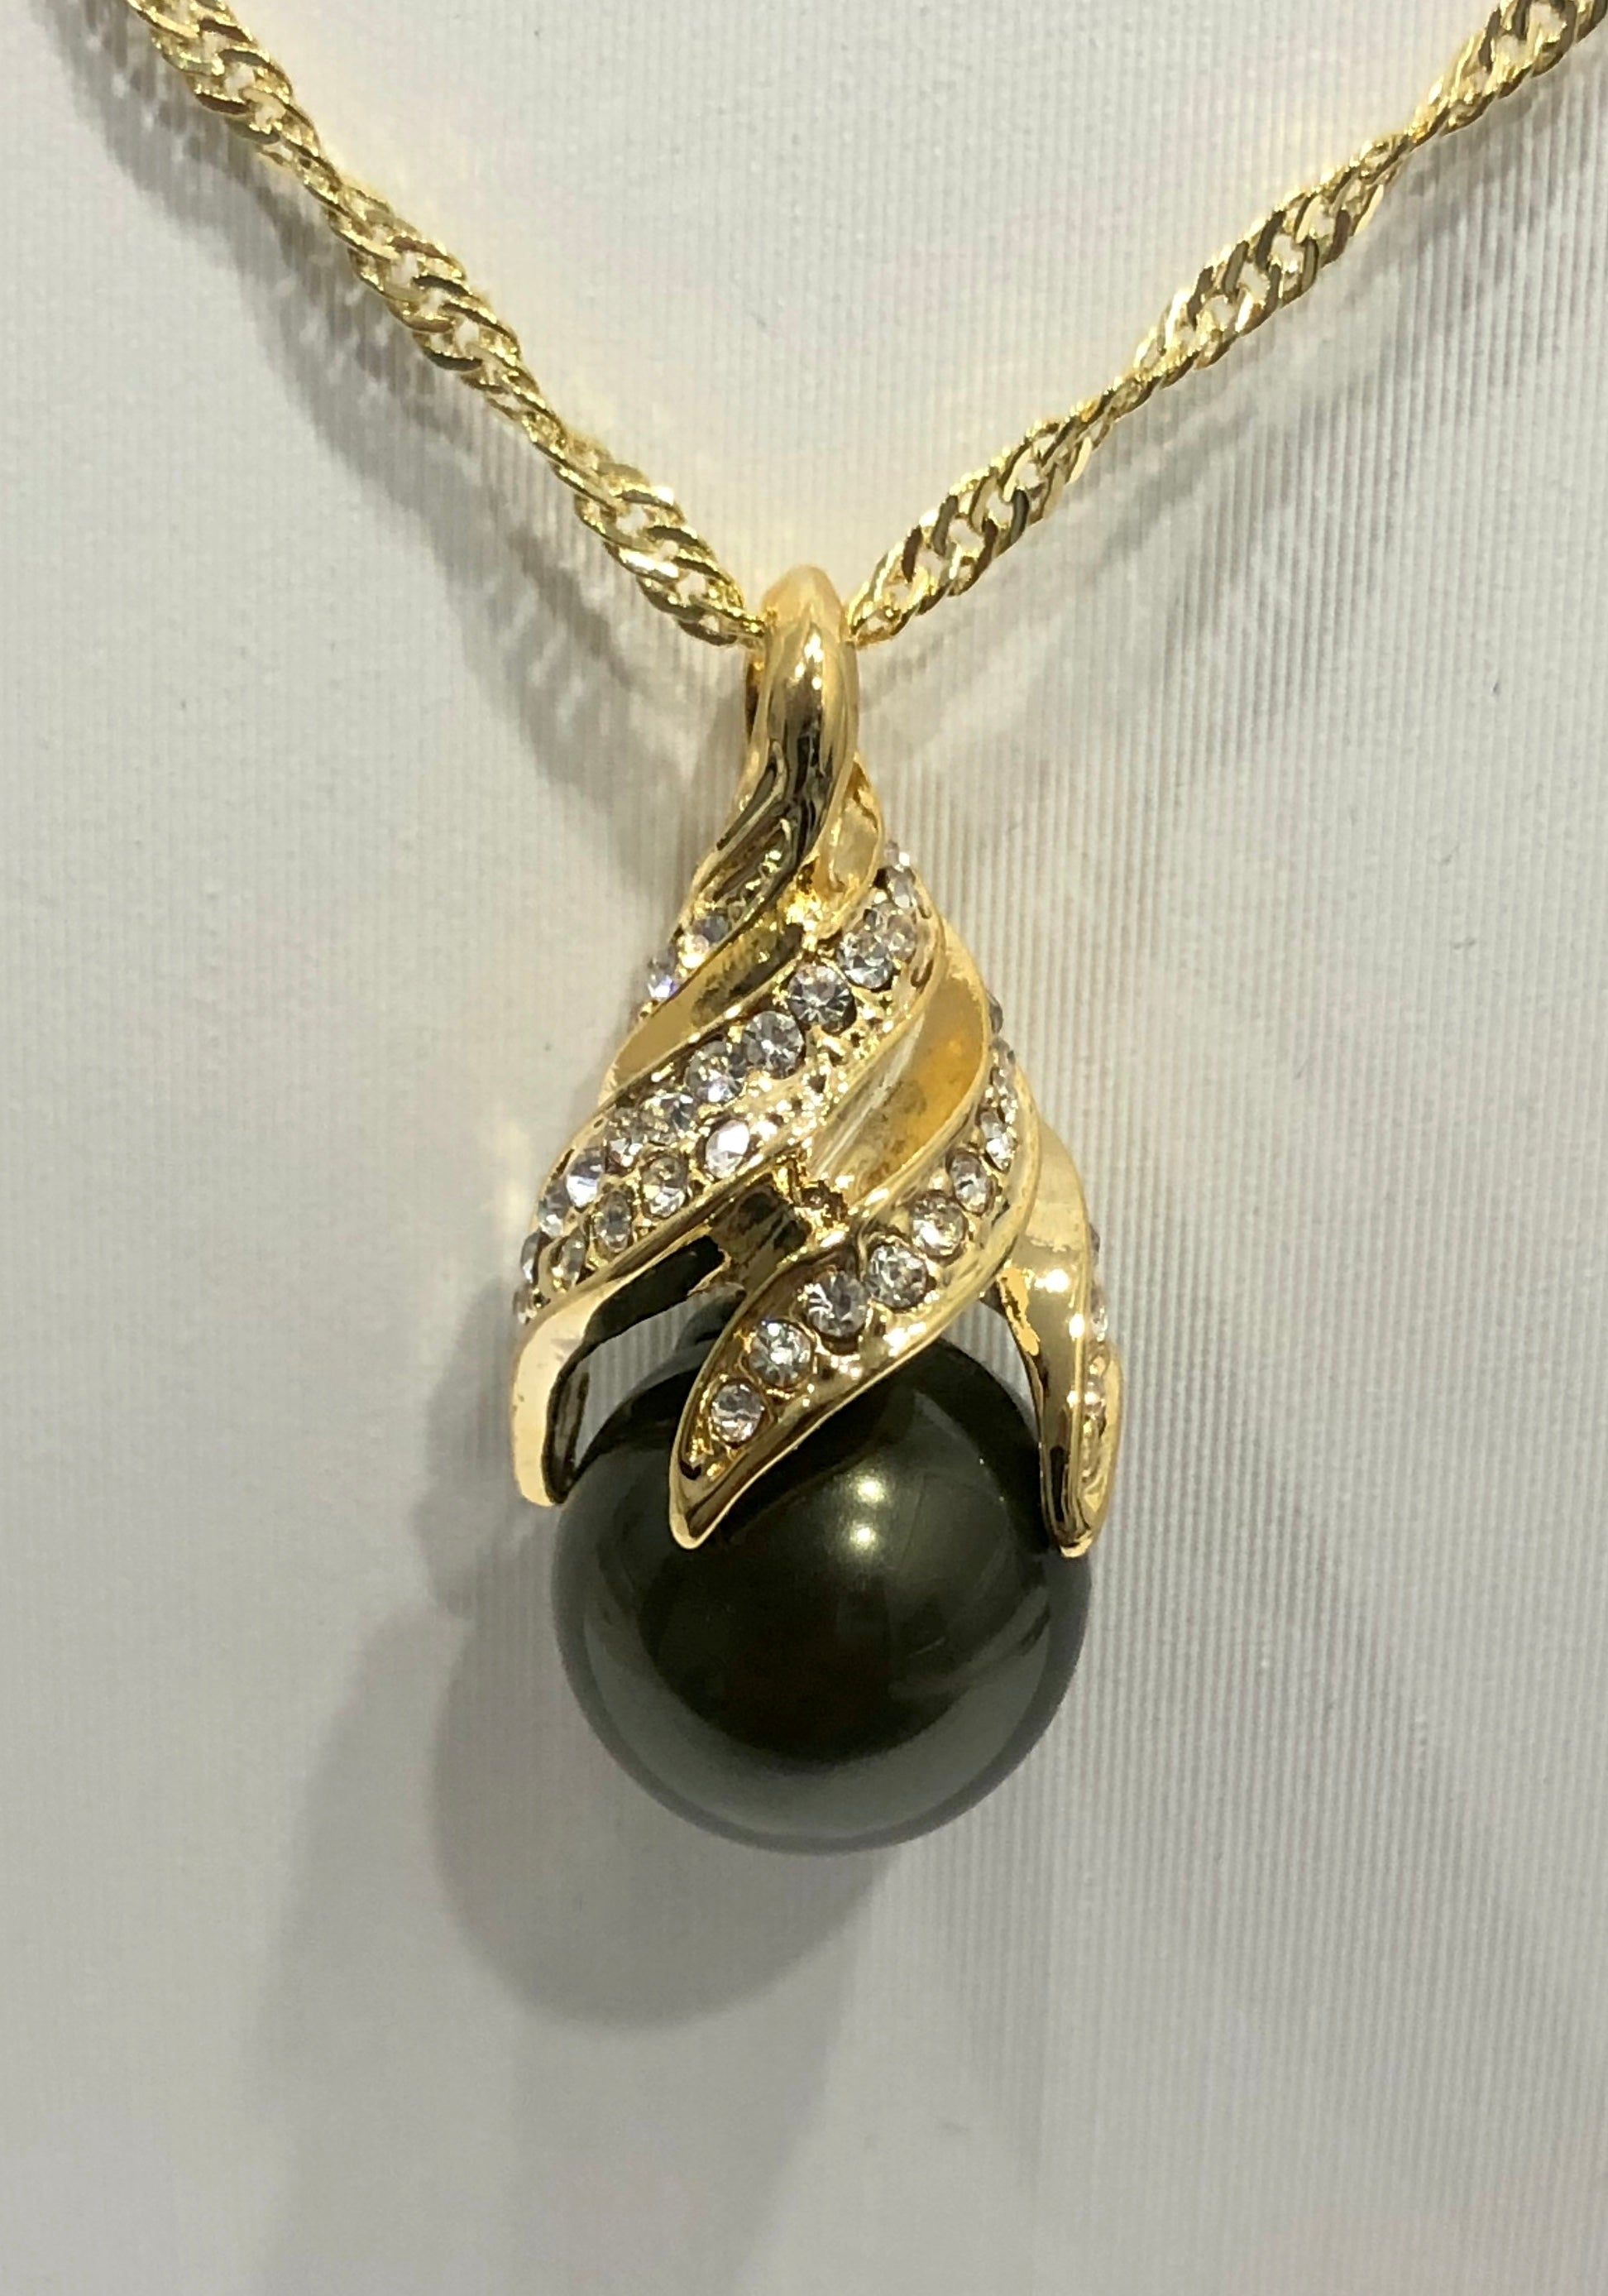 18ct Gold Plated Faux Pearl Pendant - 01